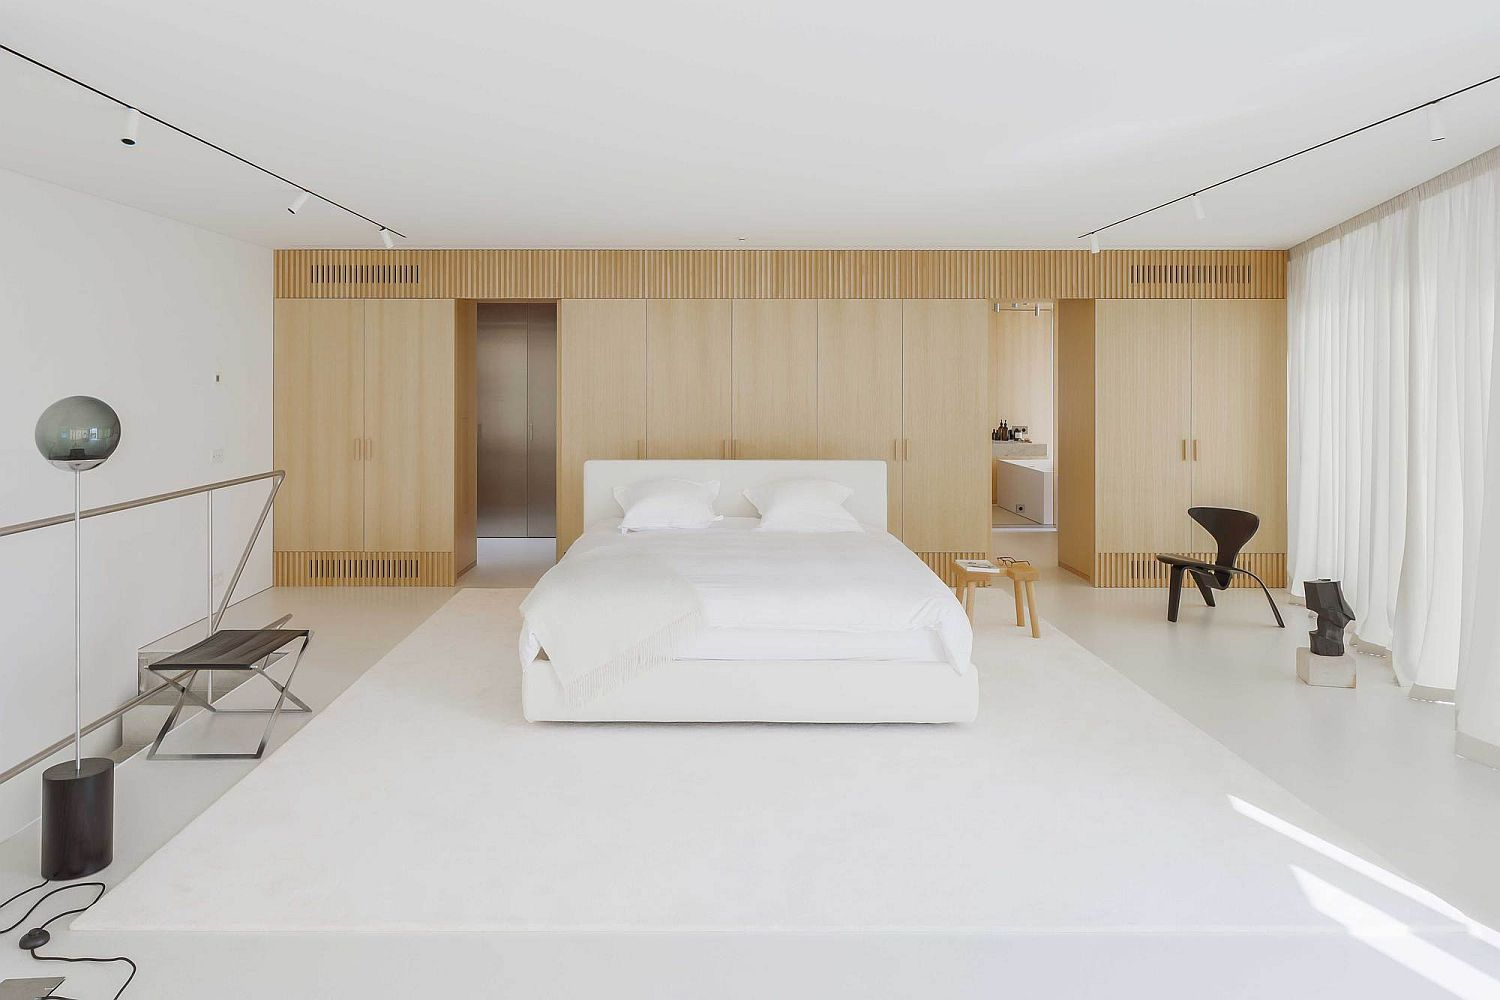 Minimal bedroom in white with wooden accent wall